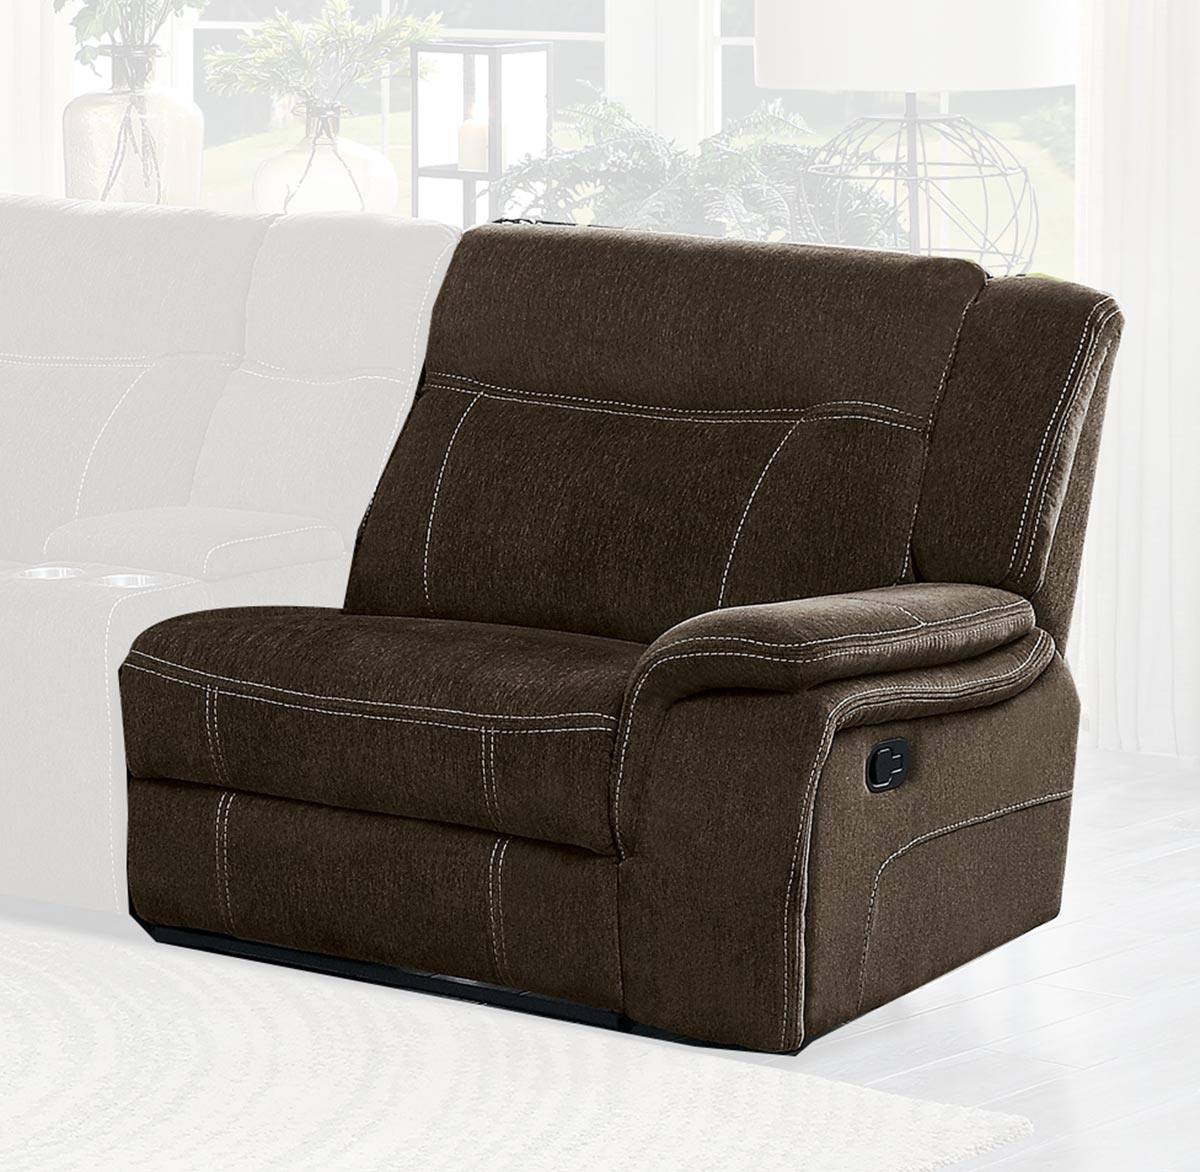 Homelegance Annabelle Right Side Reclining Chair - Brown